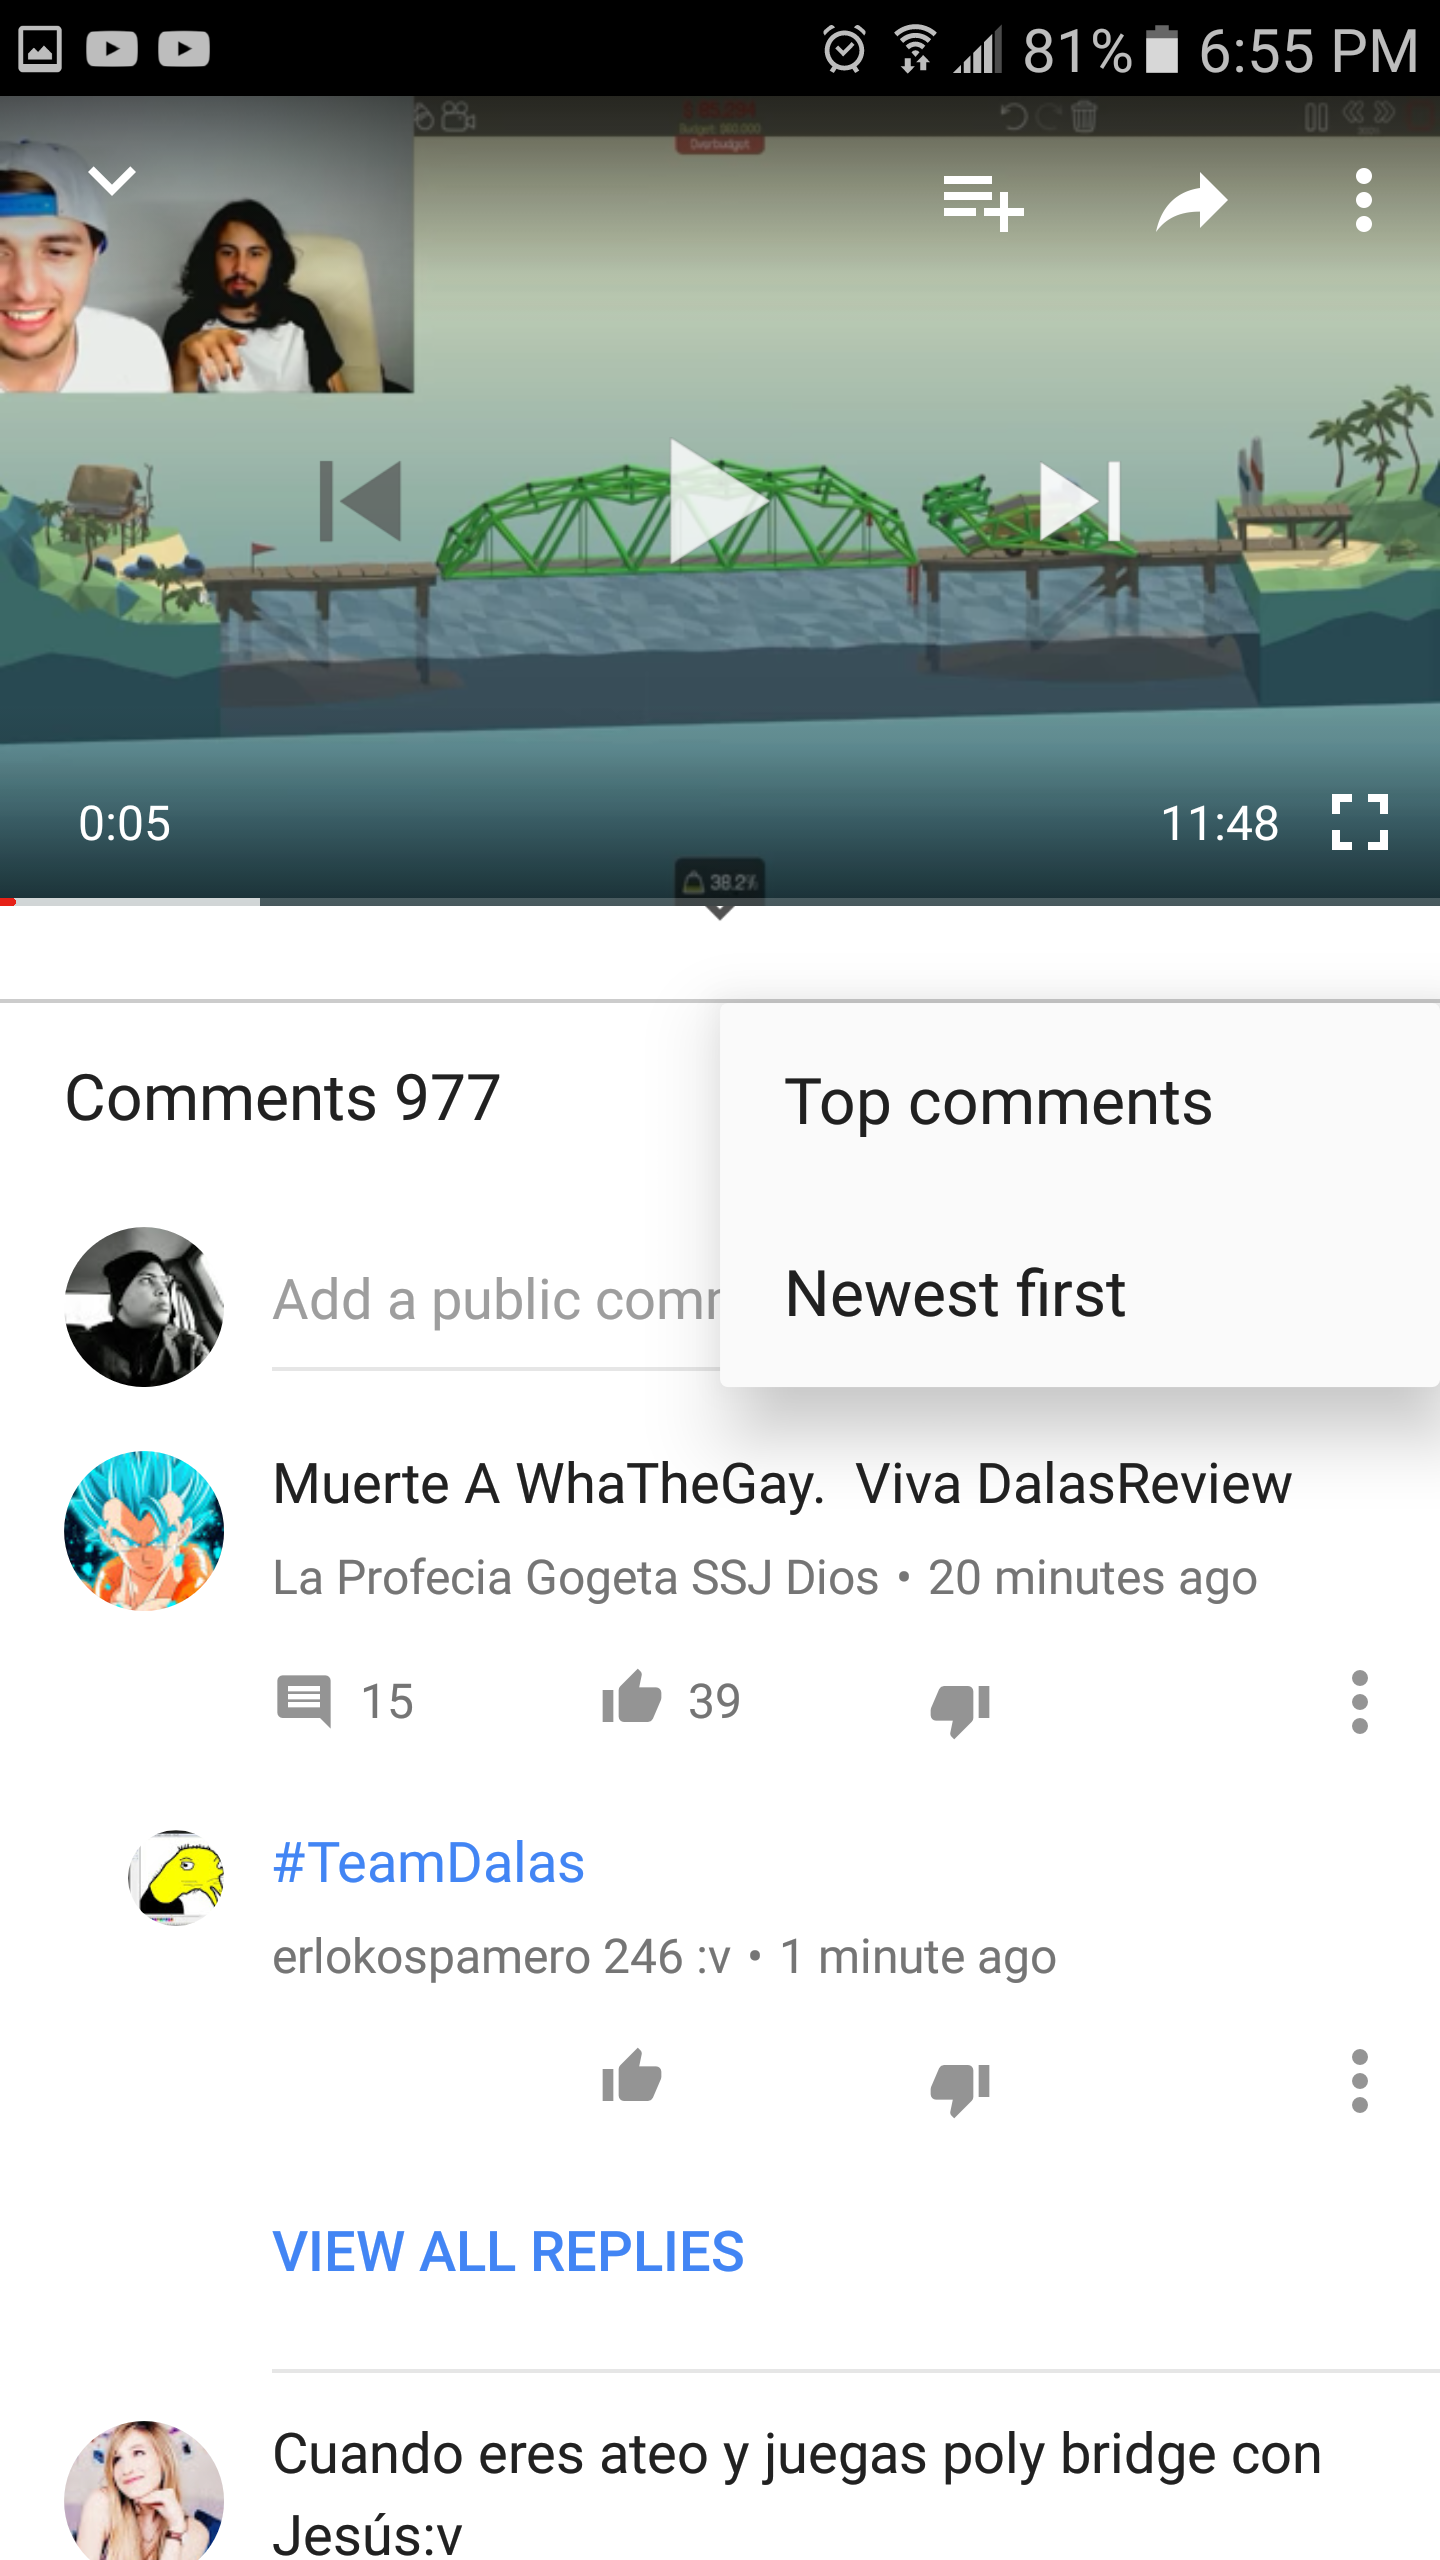 YouTube is testing an improved comment UI in the Android